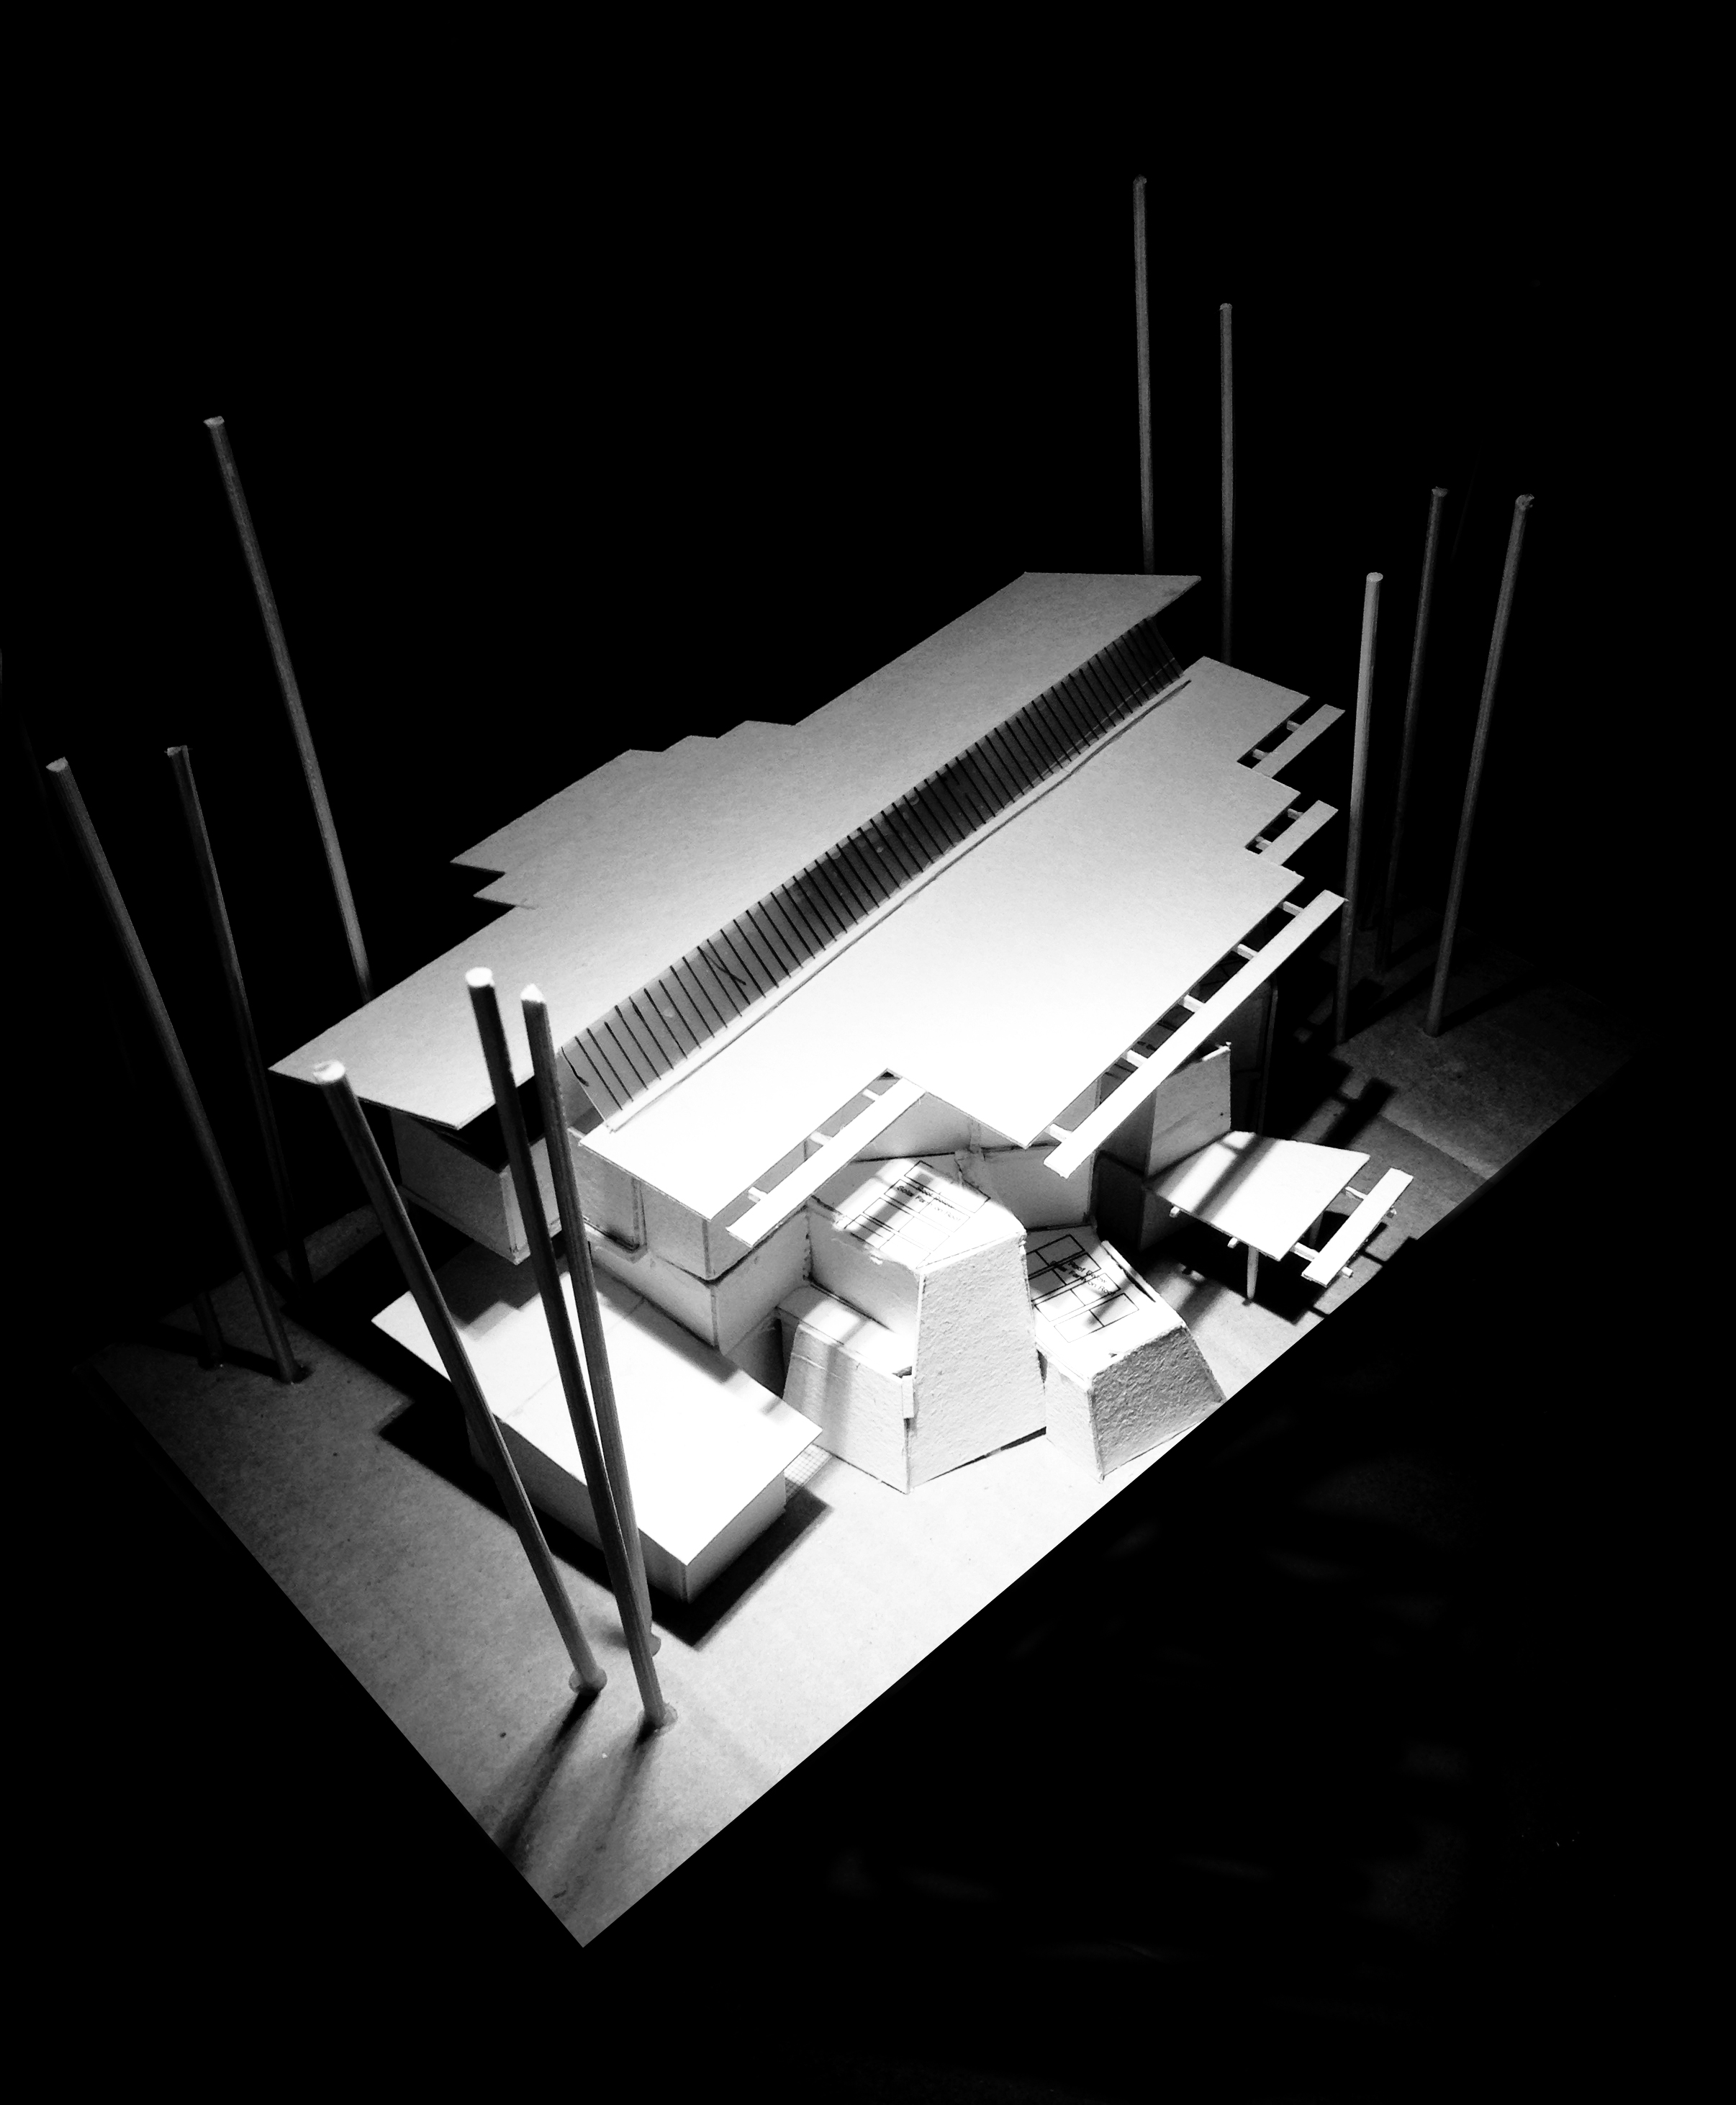 3 Storey Building design model - Front Looking From South to North